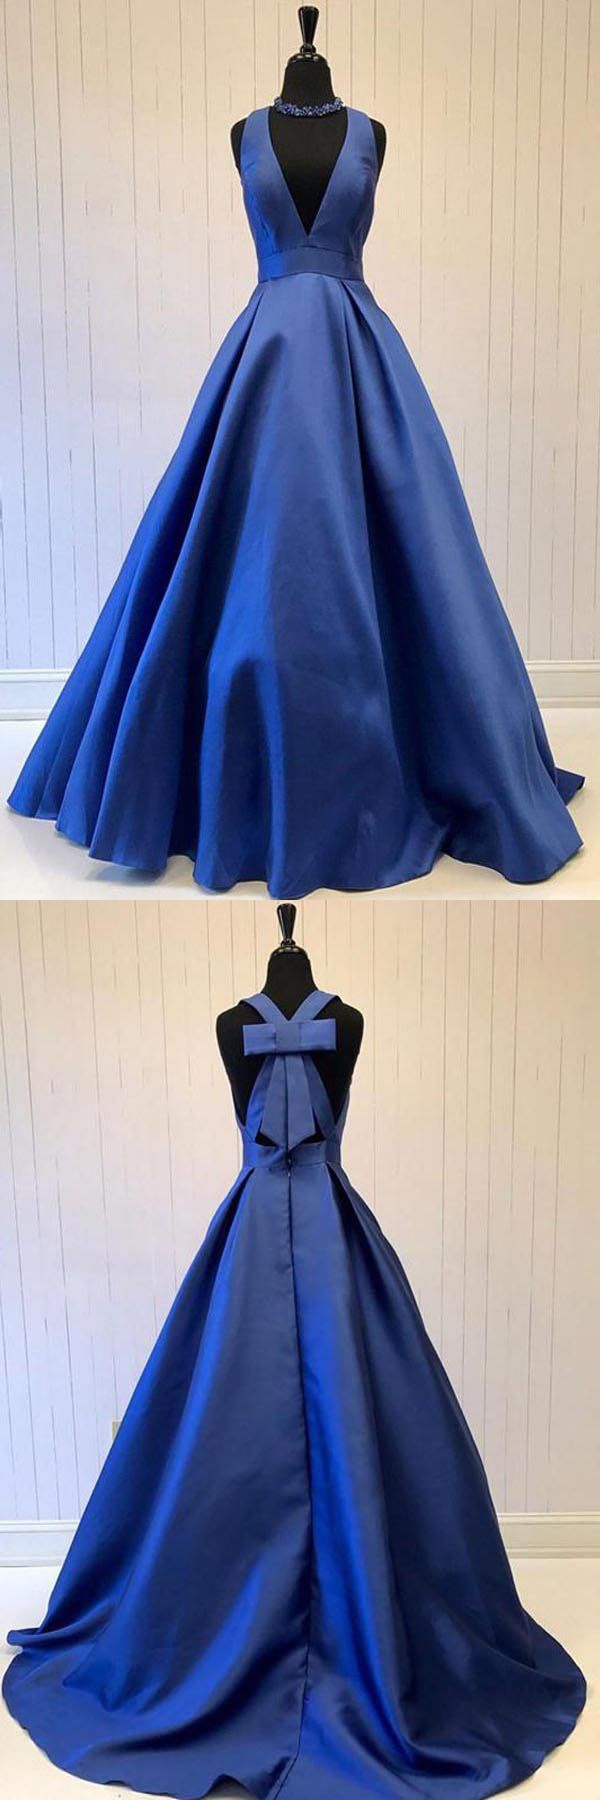 A Line Prom Dress Simple Modest Elegant Cheap Long… -  Prom shopping is alive and well on Pinterest. Compare prices for this @ Wrhel.com before you commit to buy. #Prom